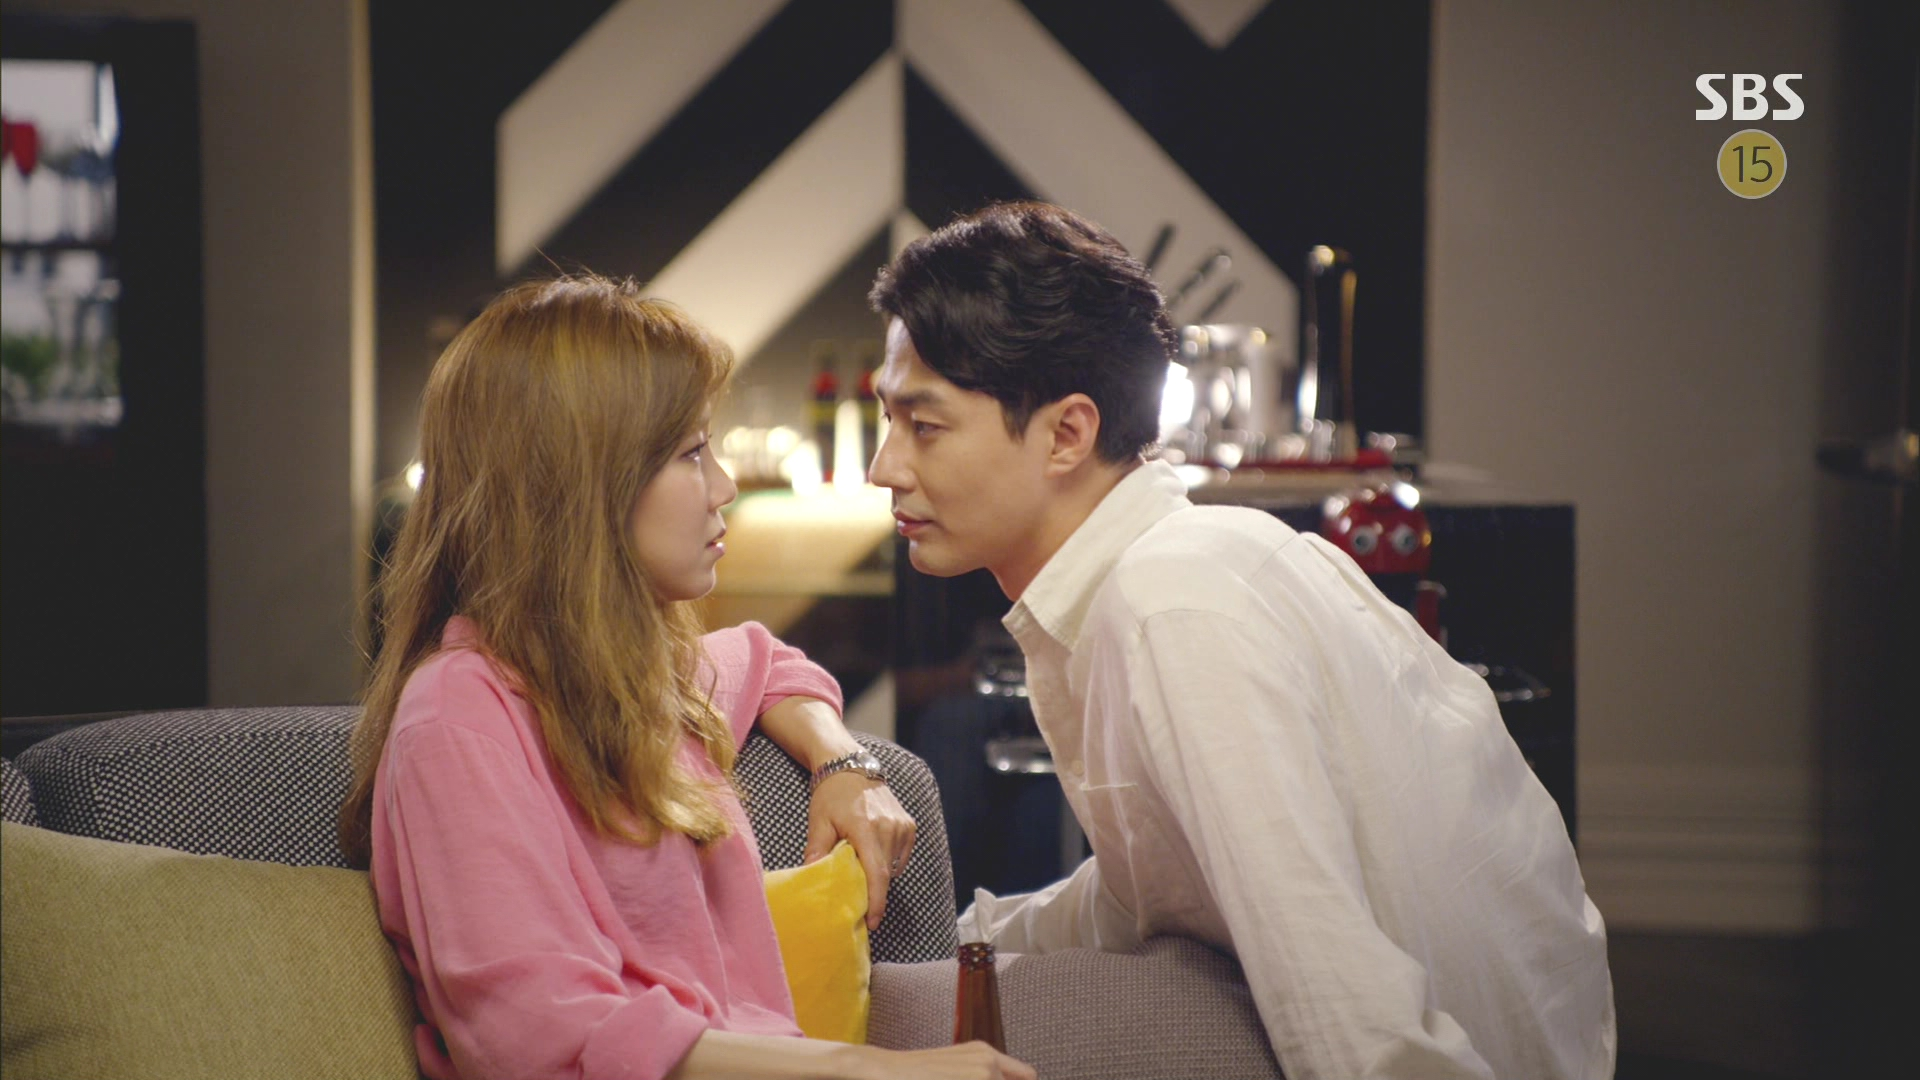 It's Okay, That's Love Episode 4